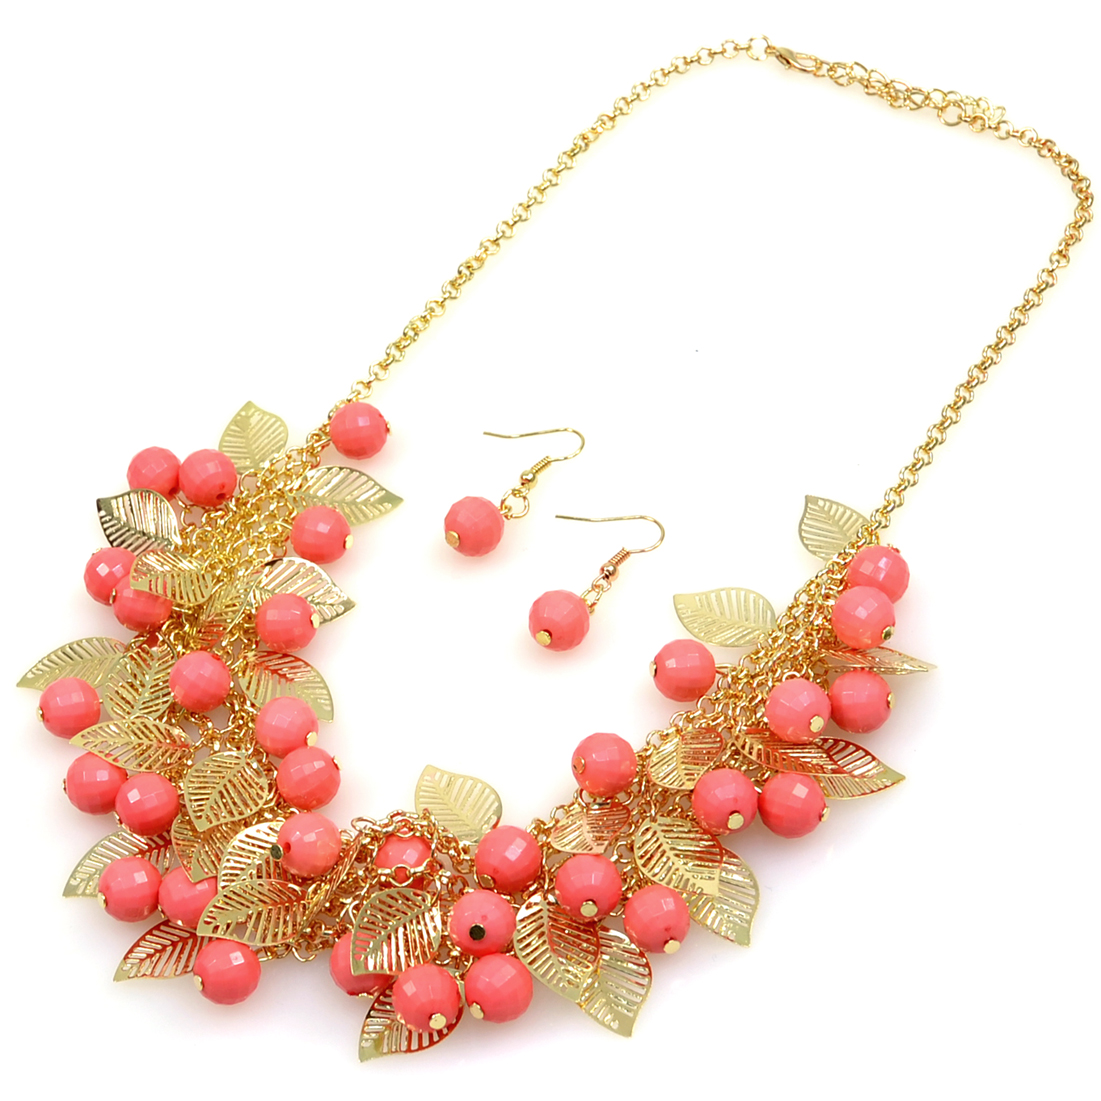 Bead And Leaf Design Bib Necklace And Earring Set